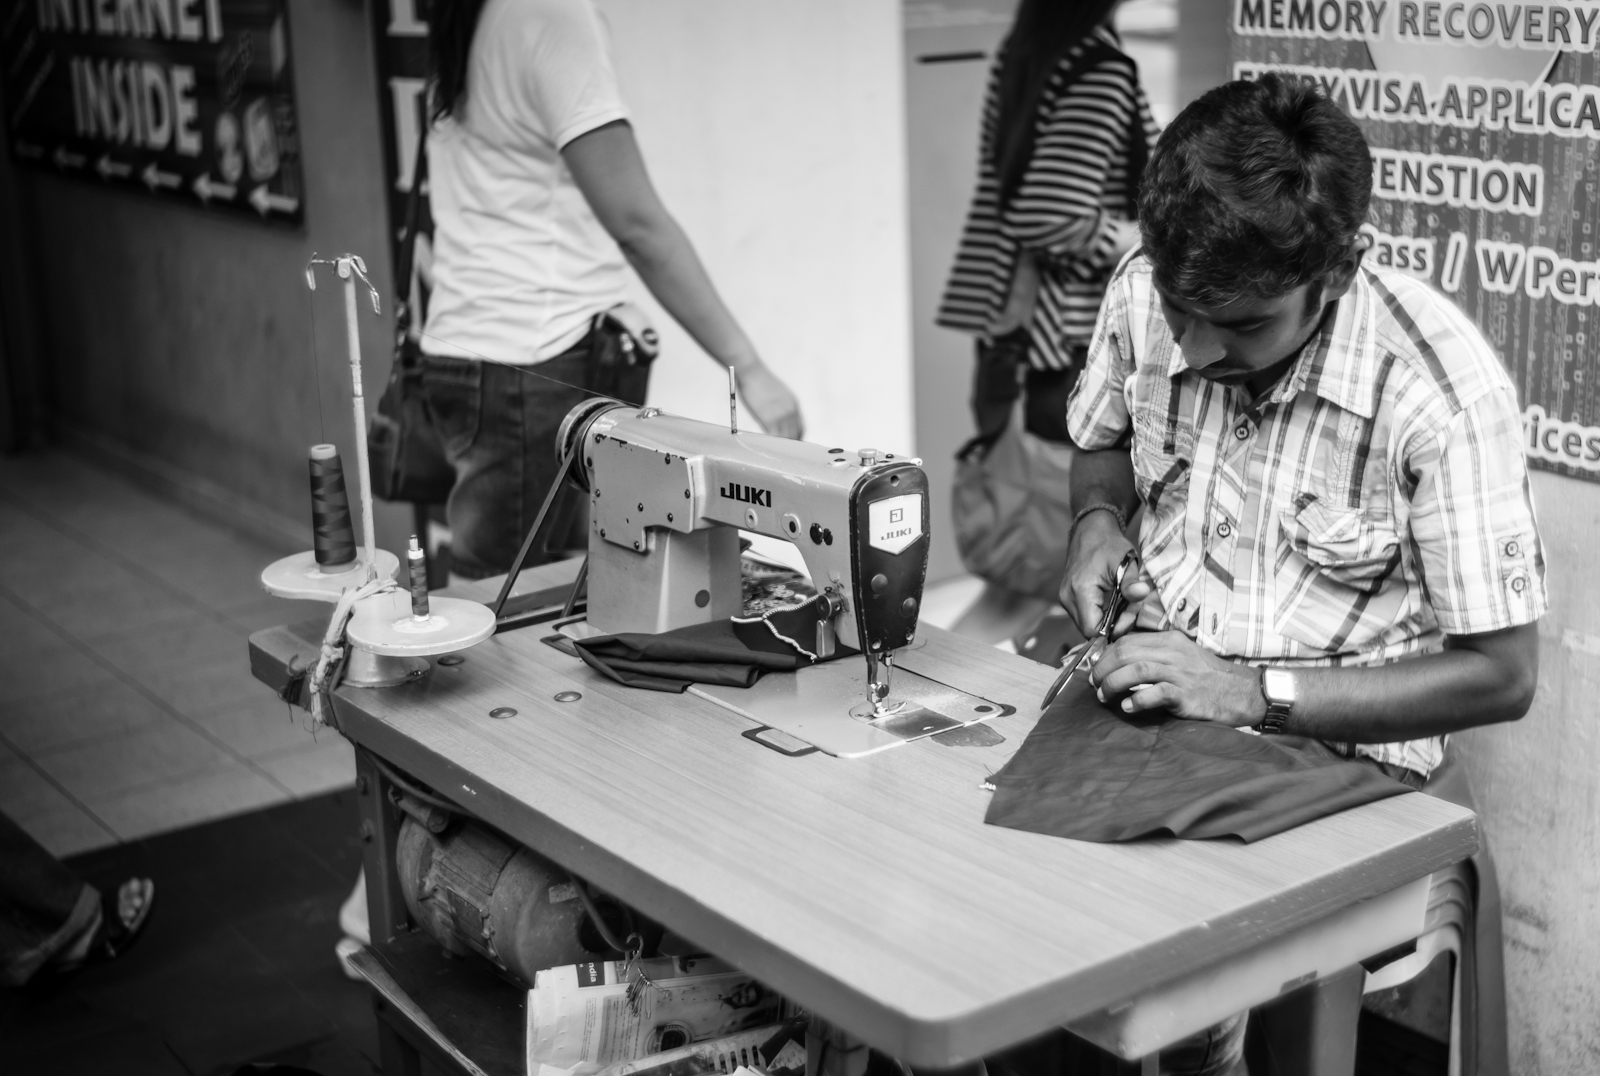 Street photography - Alteration service in Little India